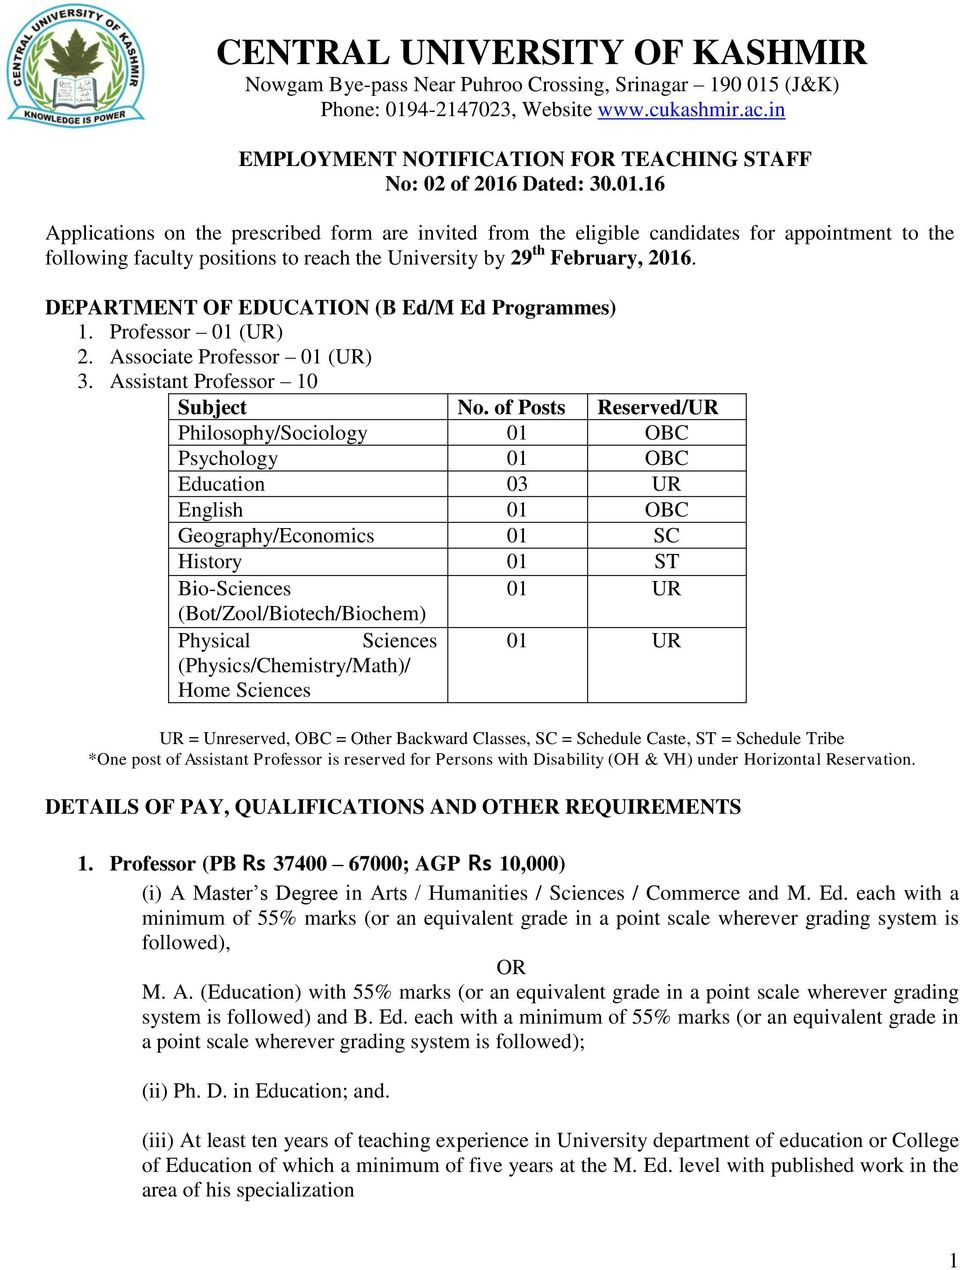 Dated: 30.01.16 Applications on the prescribed form are invited from the eligible candidates for appointment to the following faculty positions to reach the University by 29 th February, 2016.